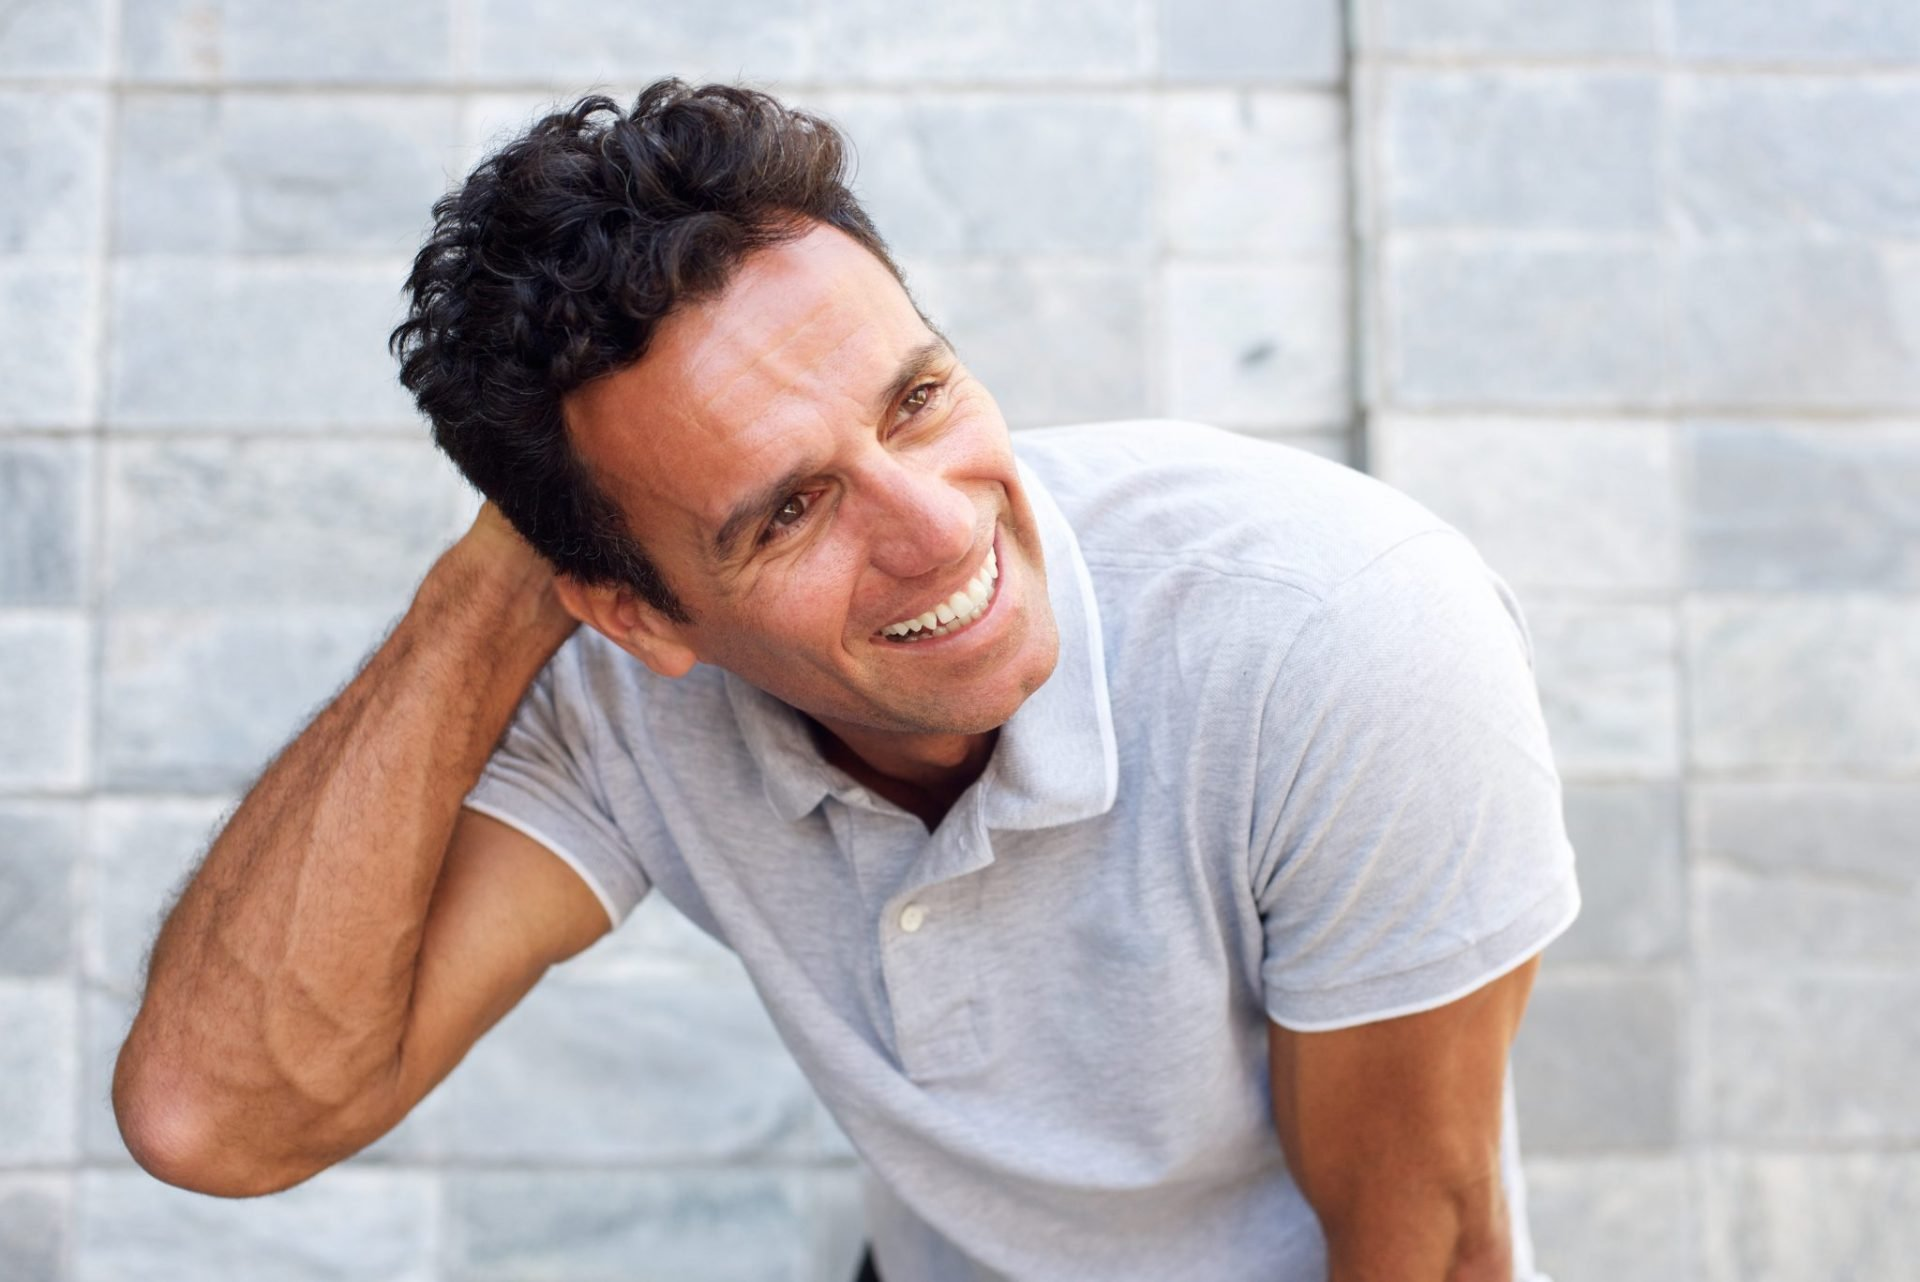 close up portrait of a handsome older man laughing with a black hair transplant.